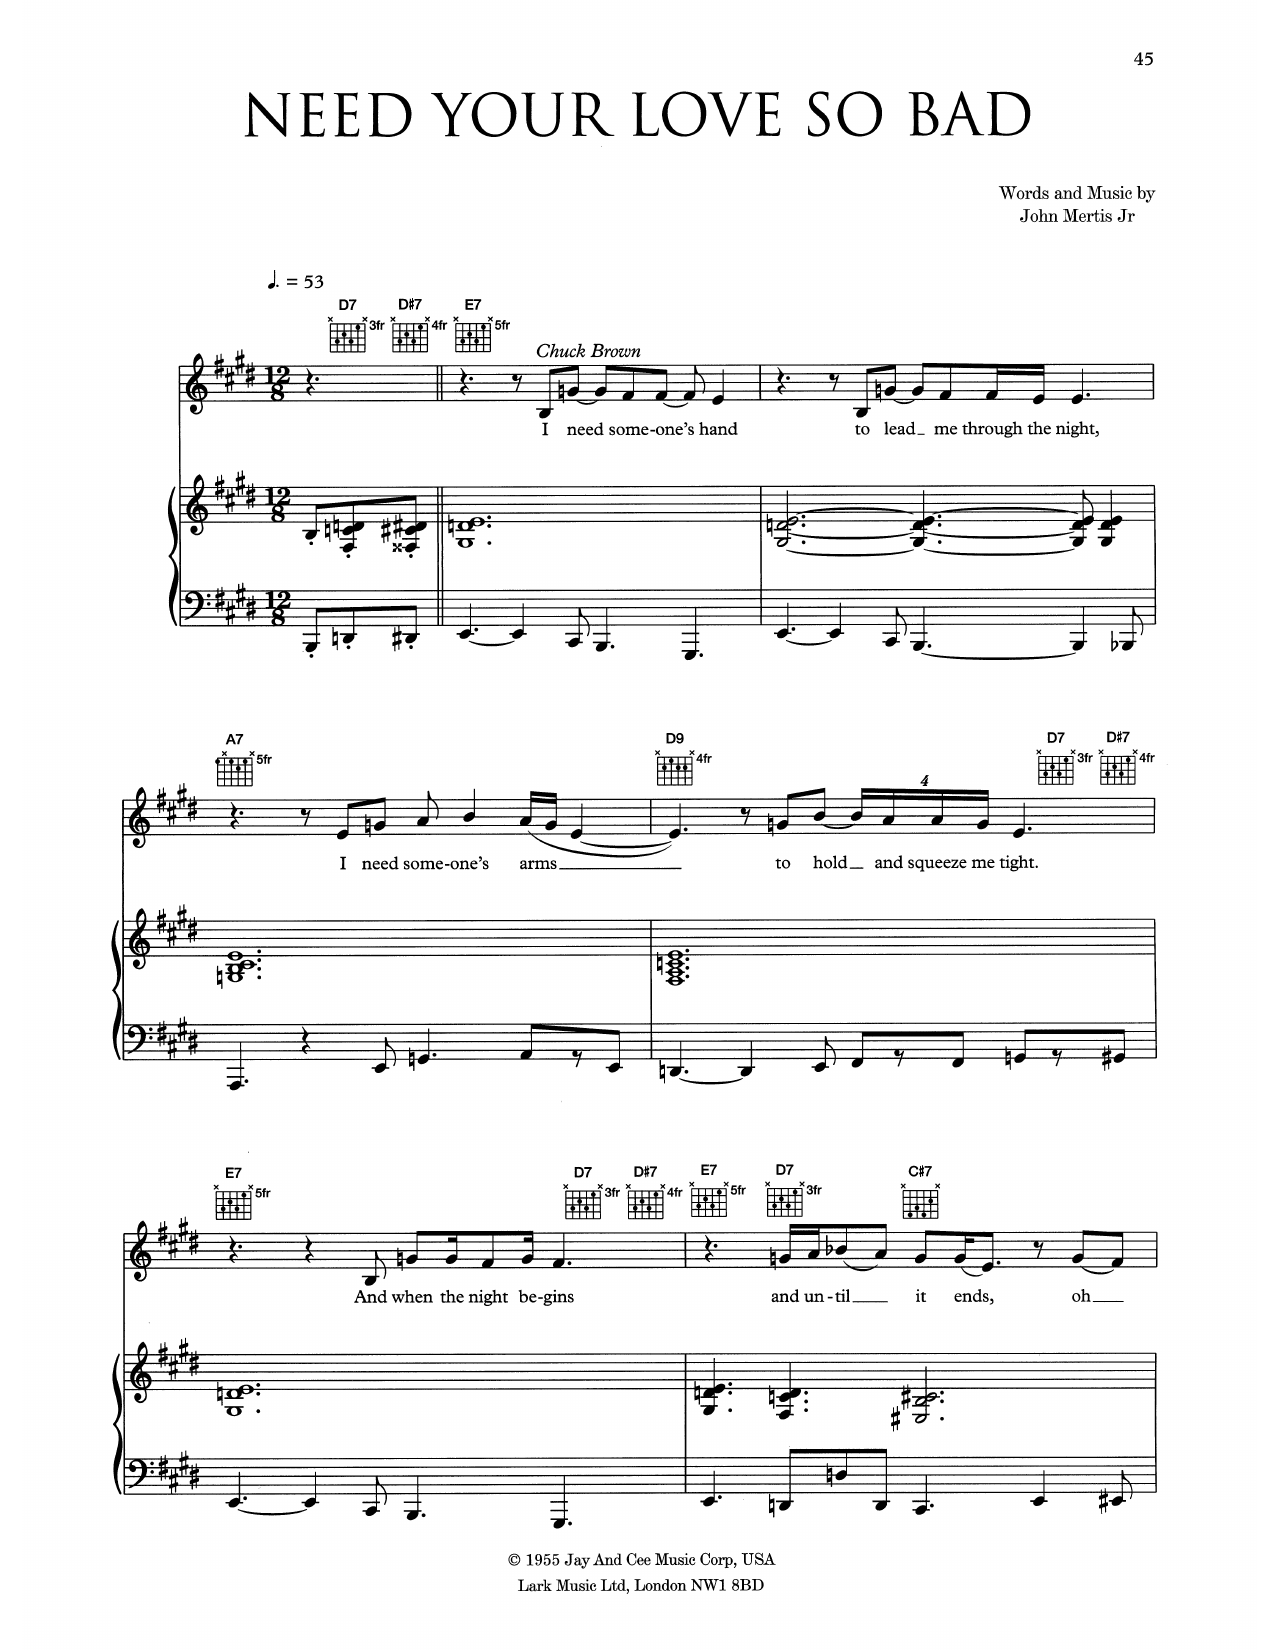 Need Your Love So Bad Sheet Music